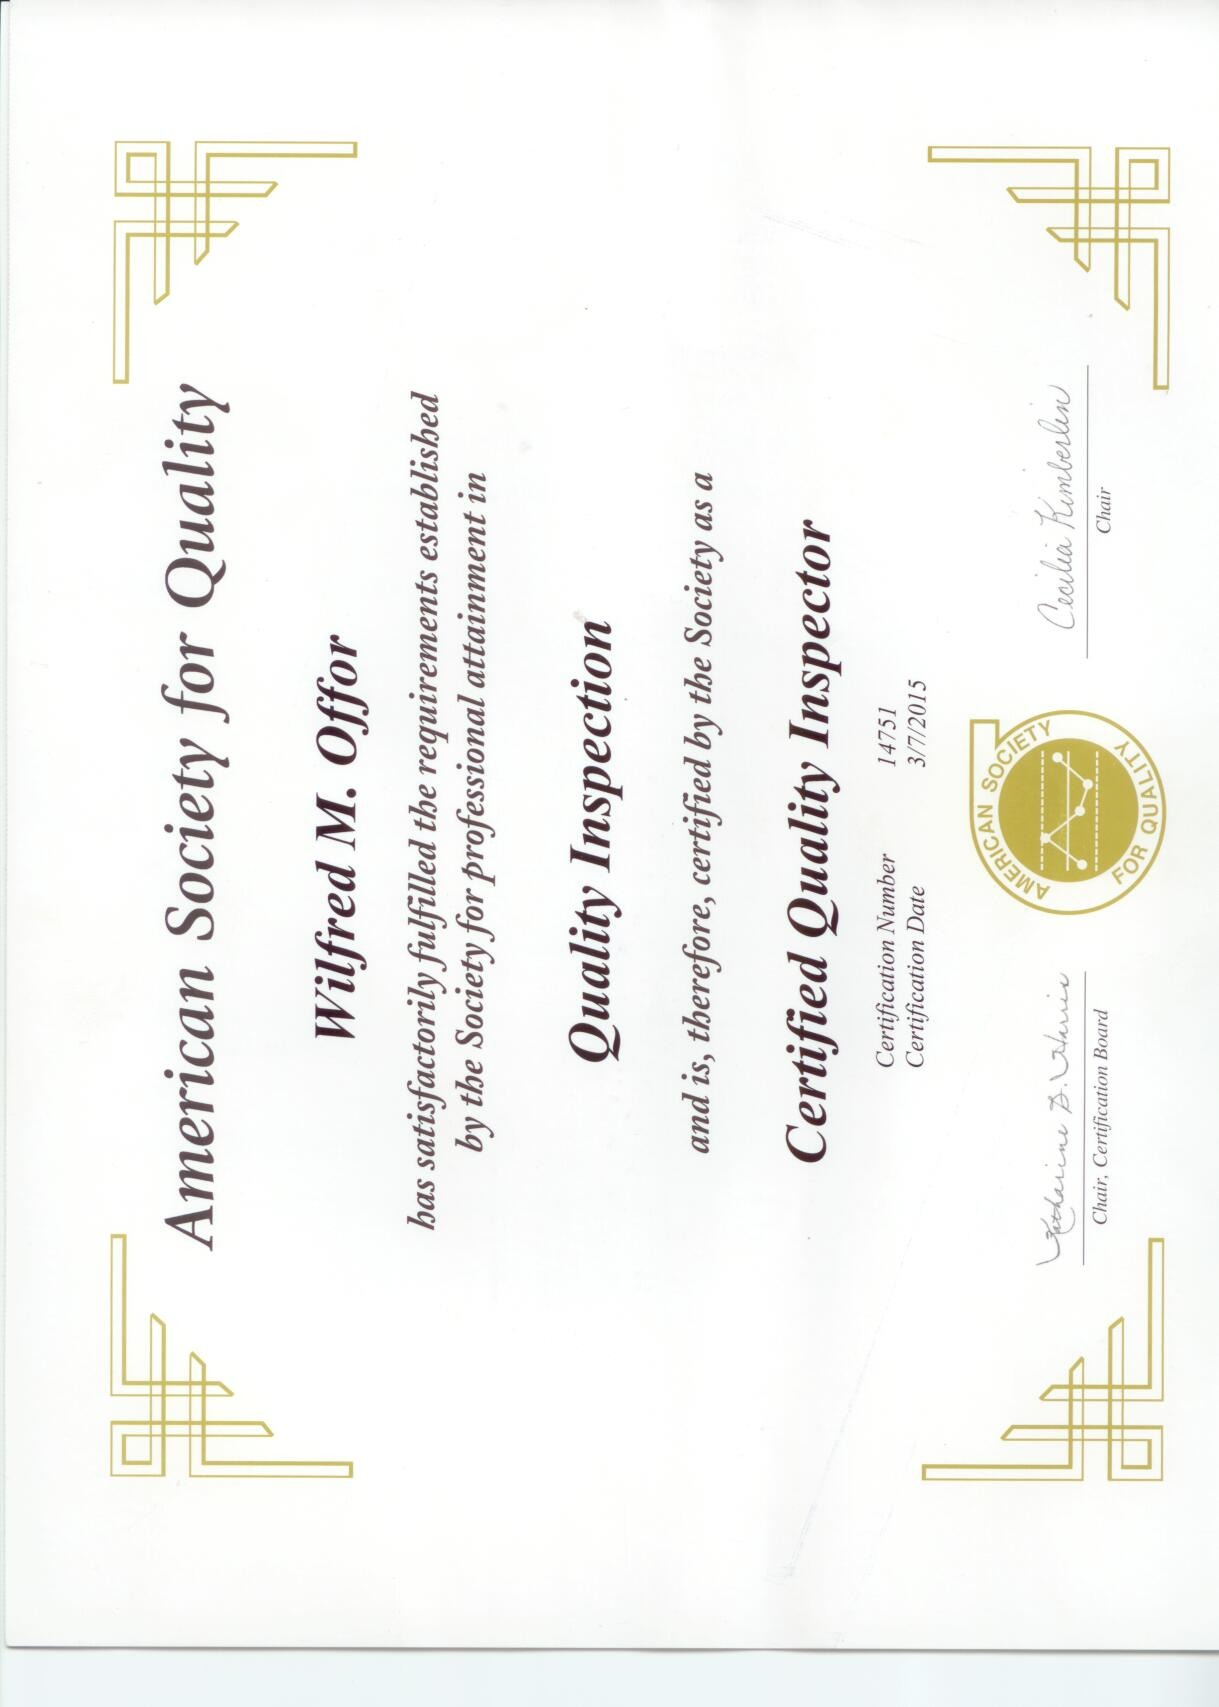 Wilfred offor bayt asq certified quality inspector certificate xflitez Choice Image